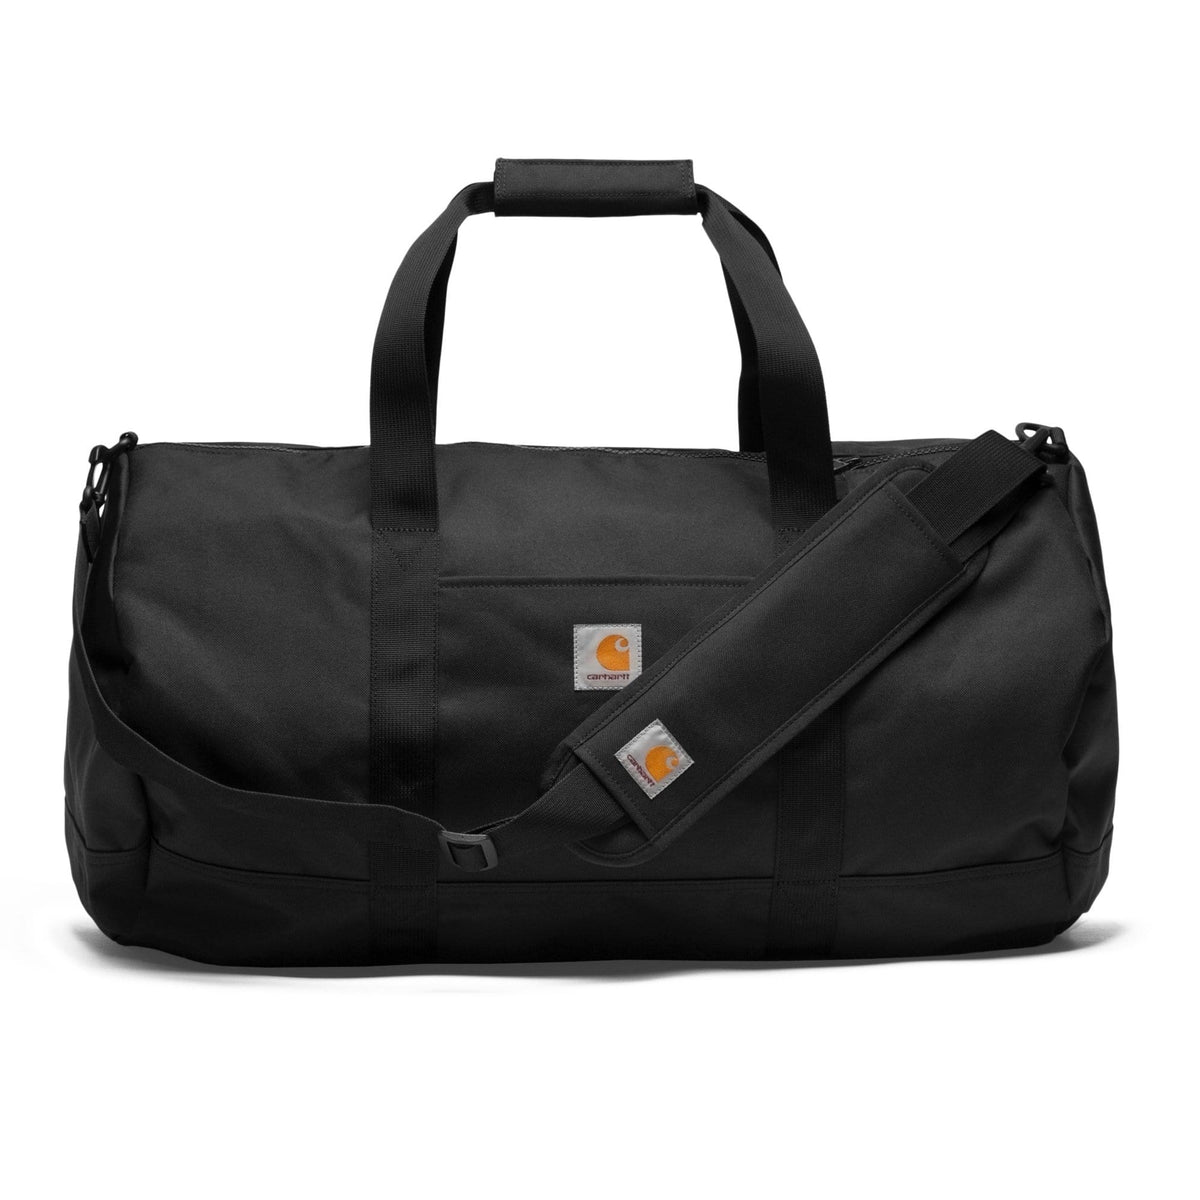 Wright Duffle Bag